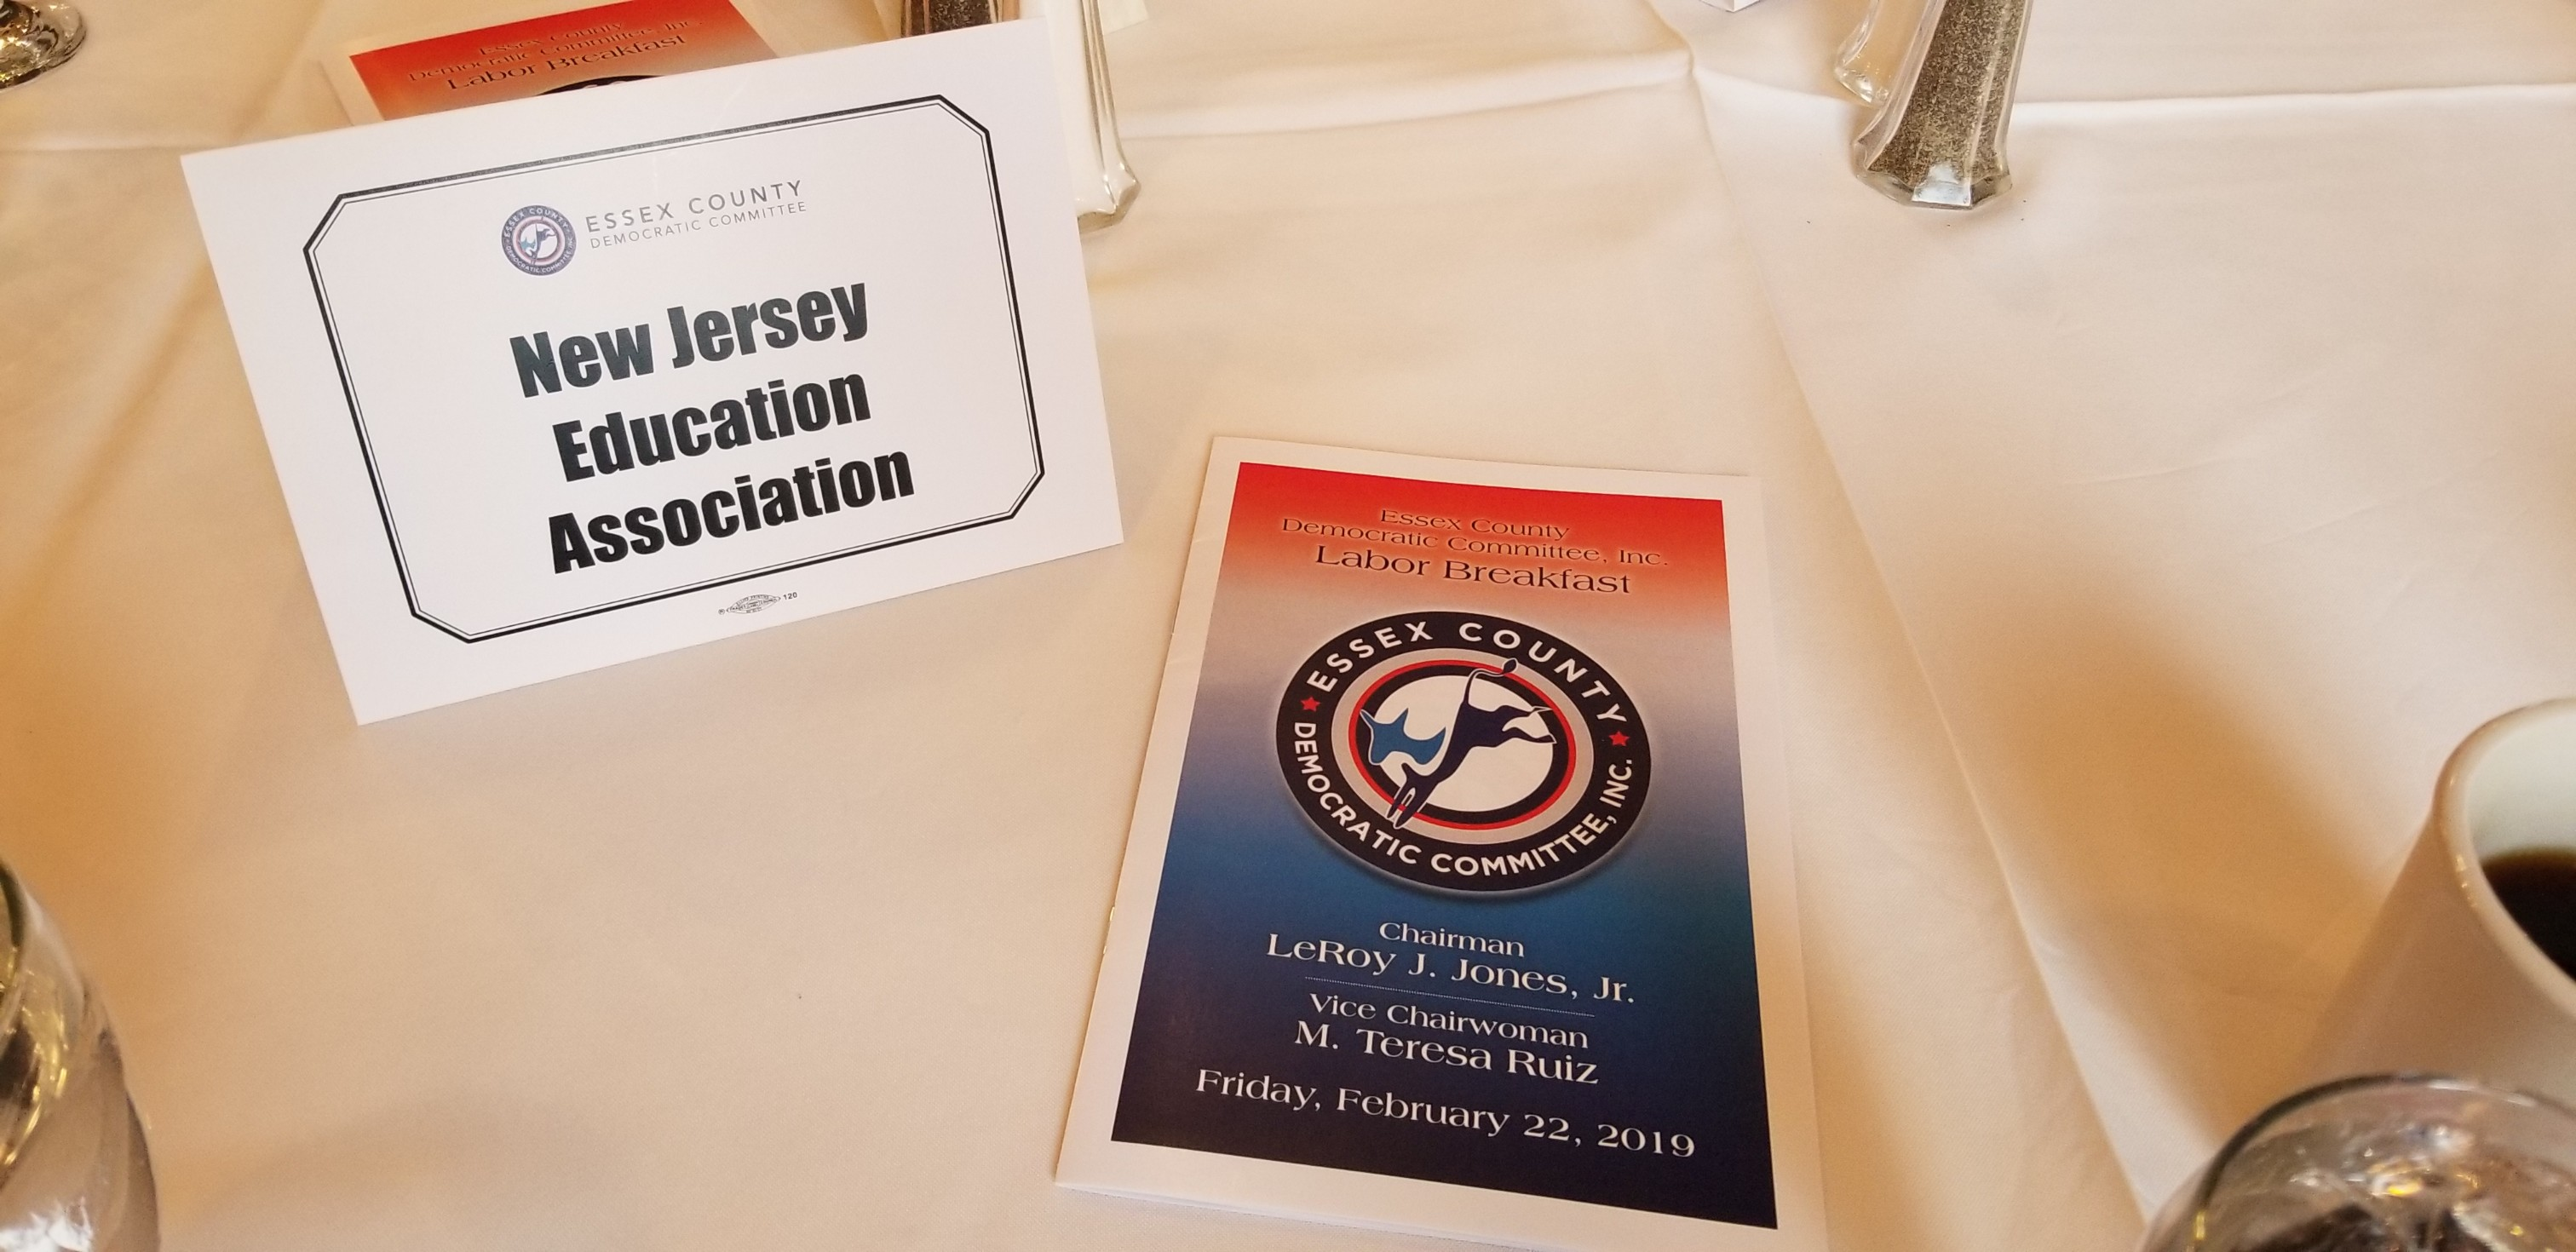 Our-own-1st-VP-Jacqui-Greadington-was-honored-this-morning-2.22.19-at-the-Essex-County-Democratic-Labor-Breakfast.-Anthony-Rosamilia-had-the-honor-of-introducing-her-2